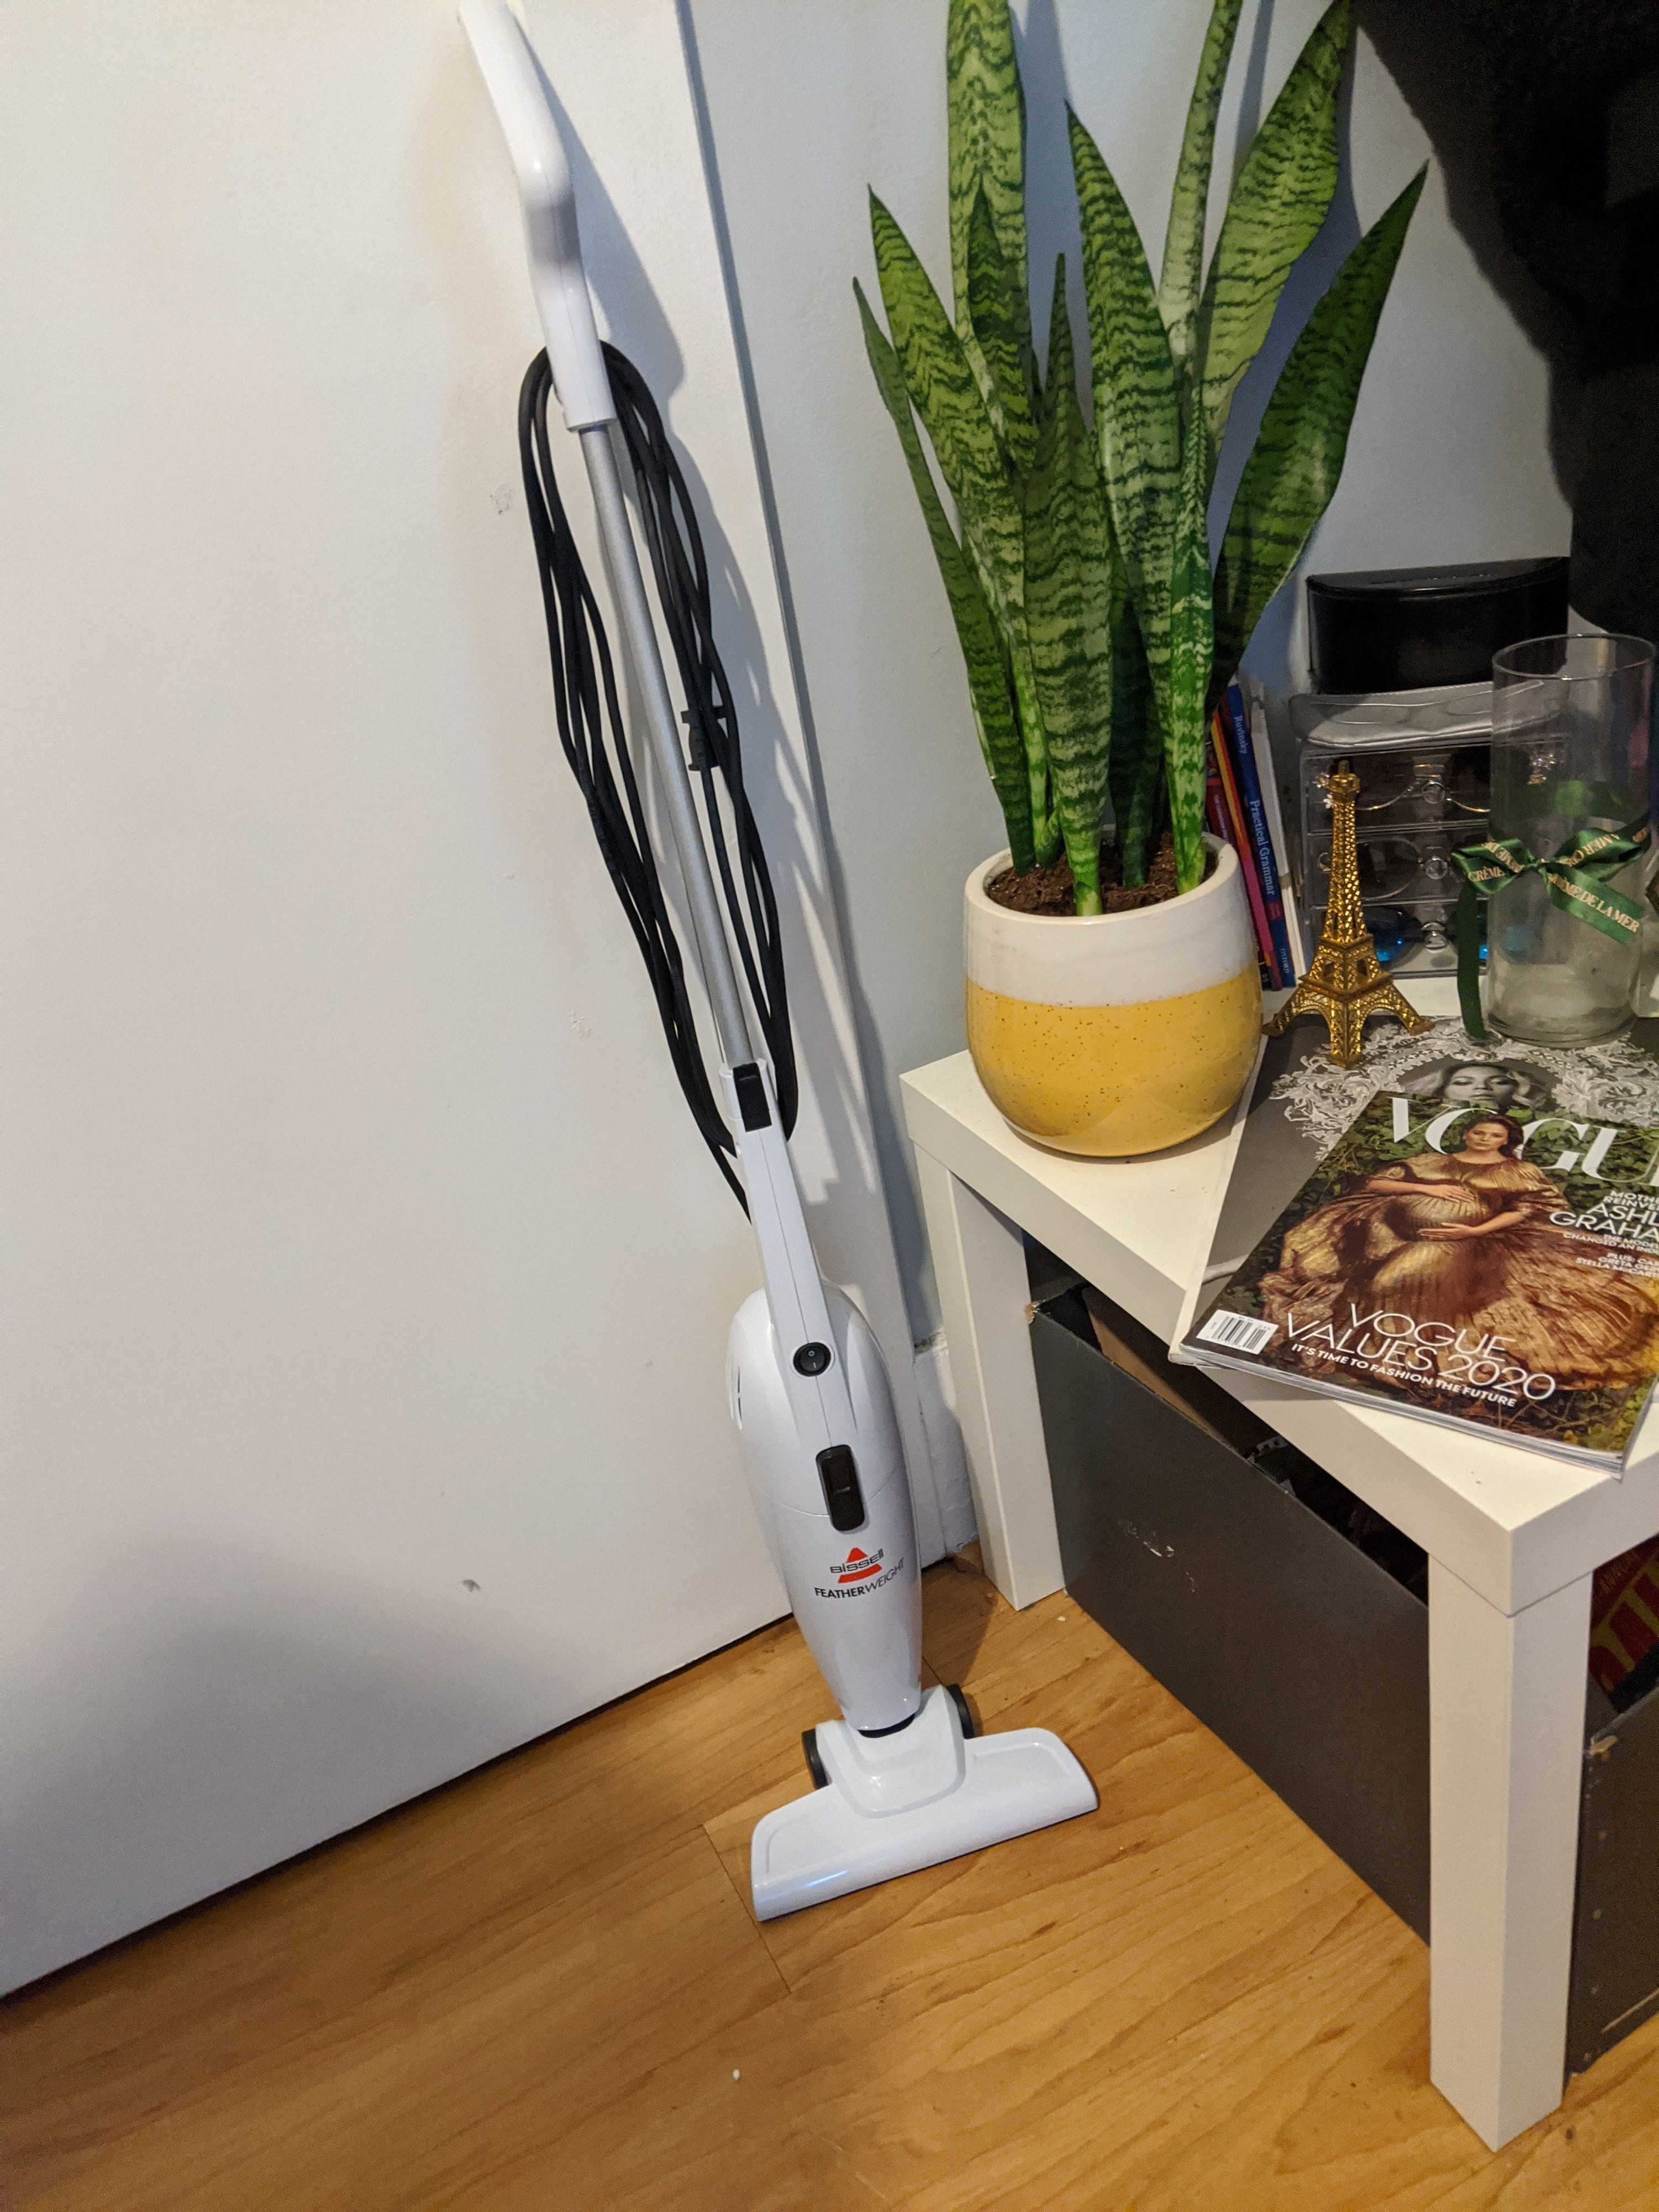 A small vacuum cleaner leaning against a door